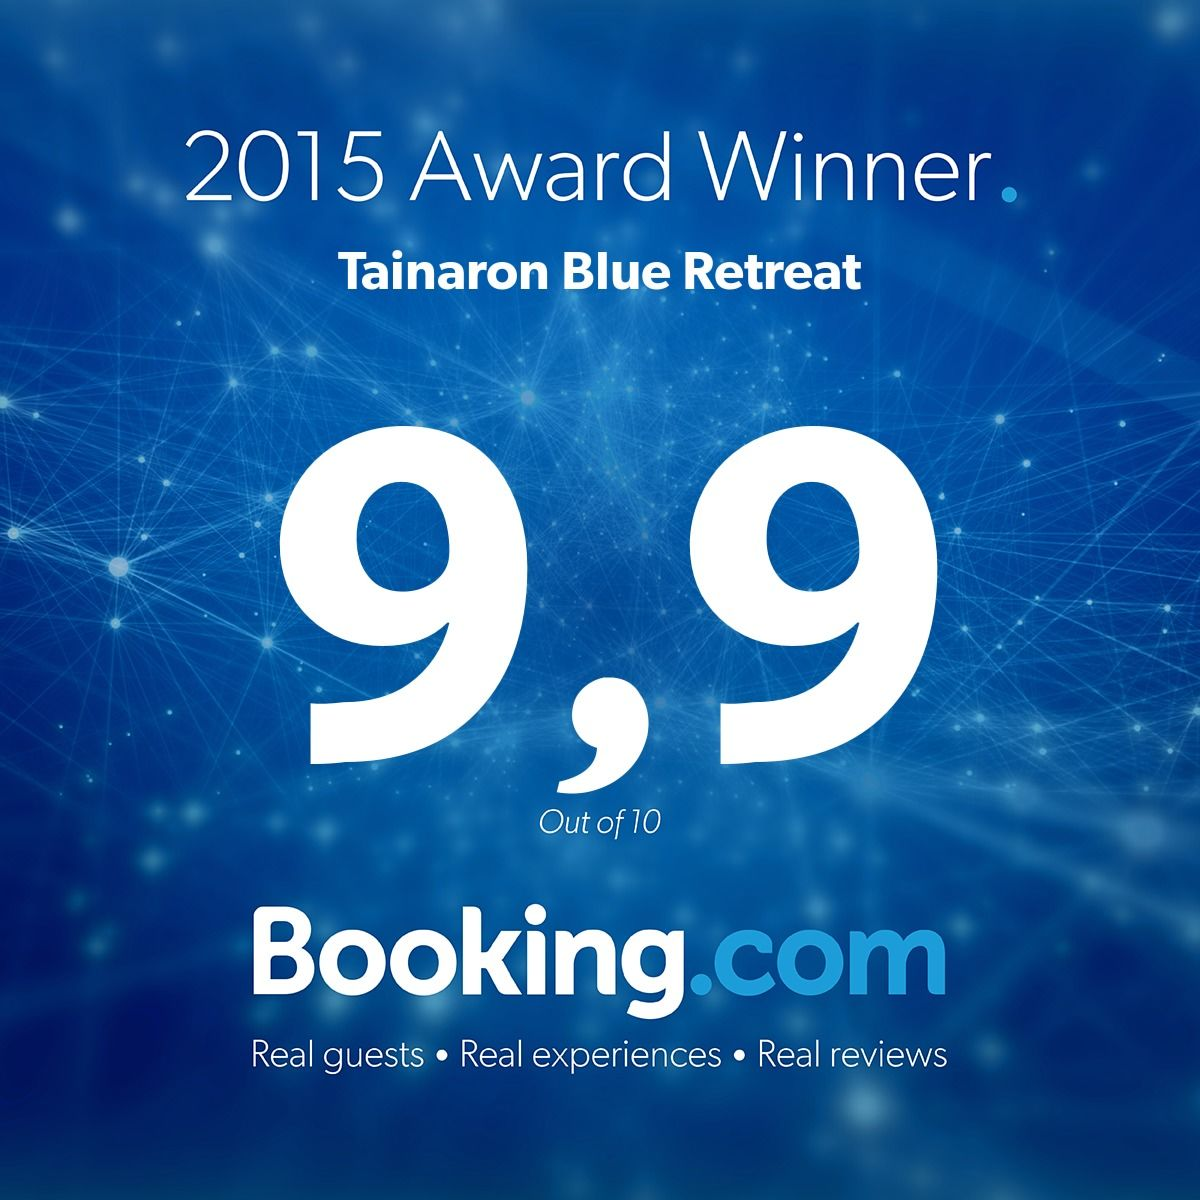 Booking.com — 2015 Award Winner